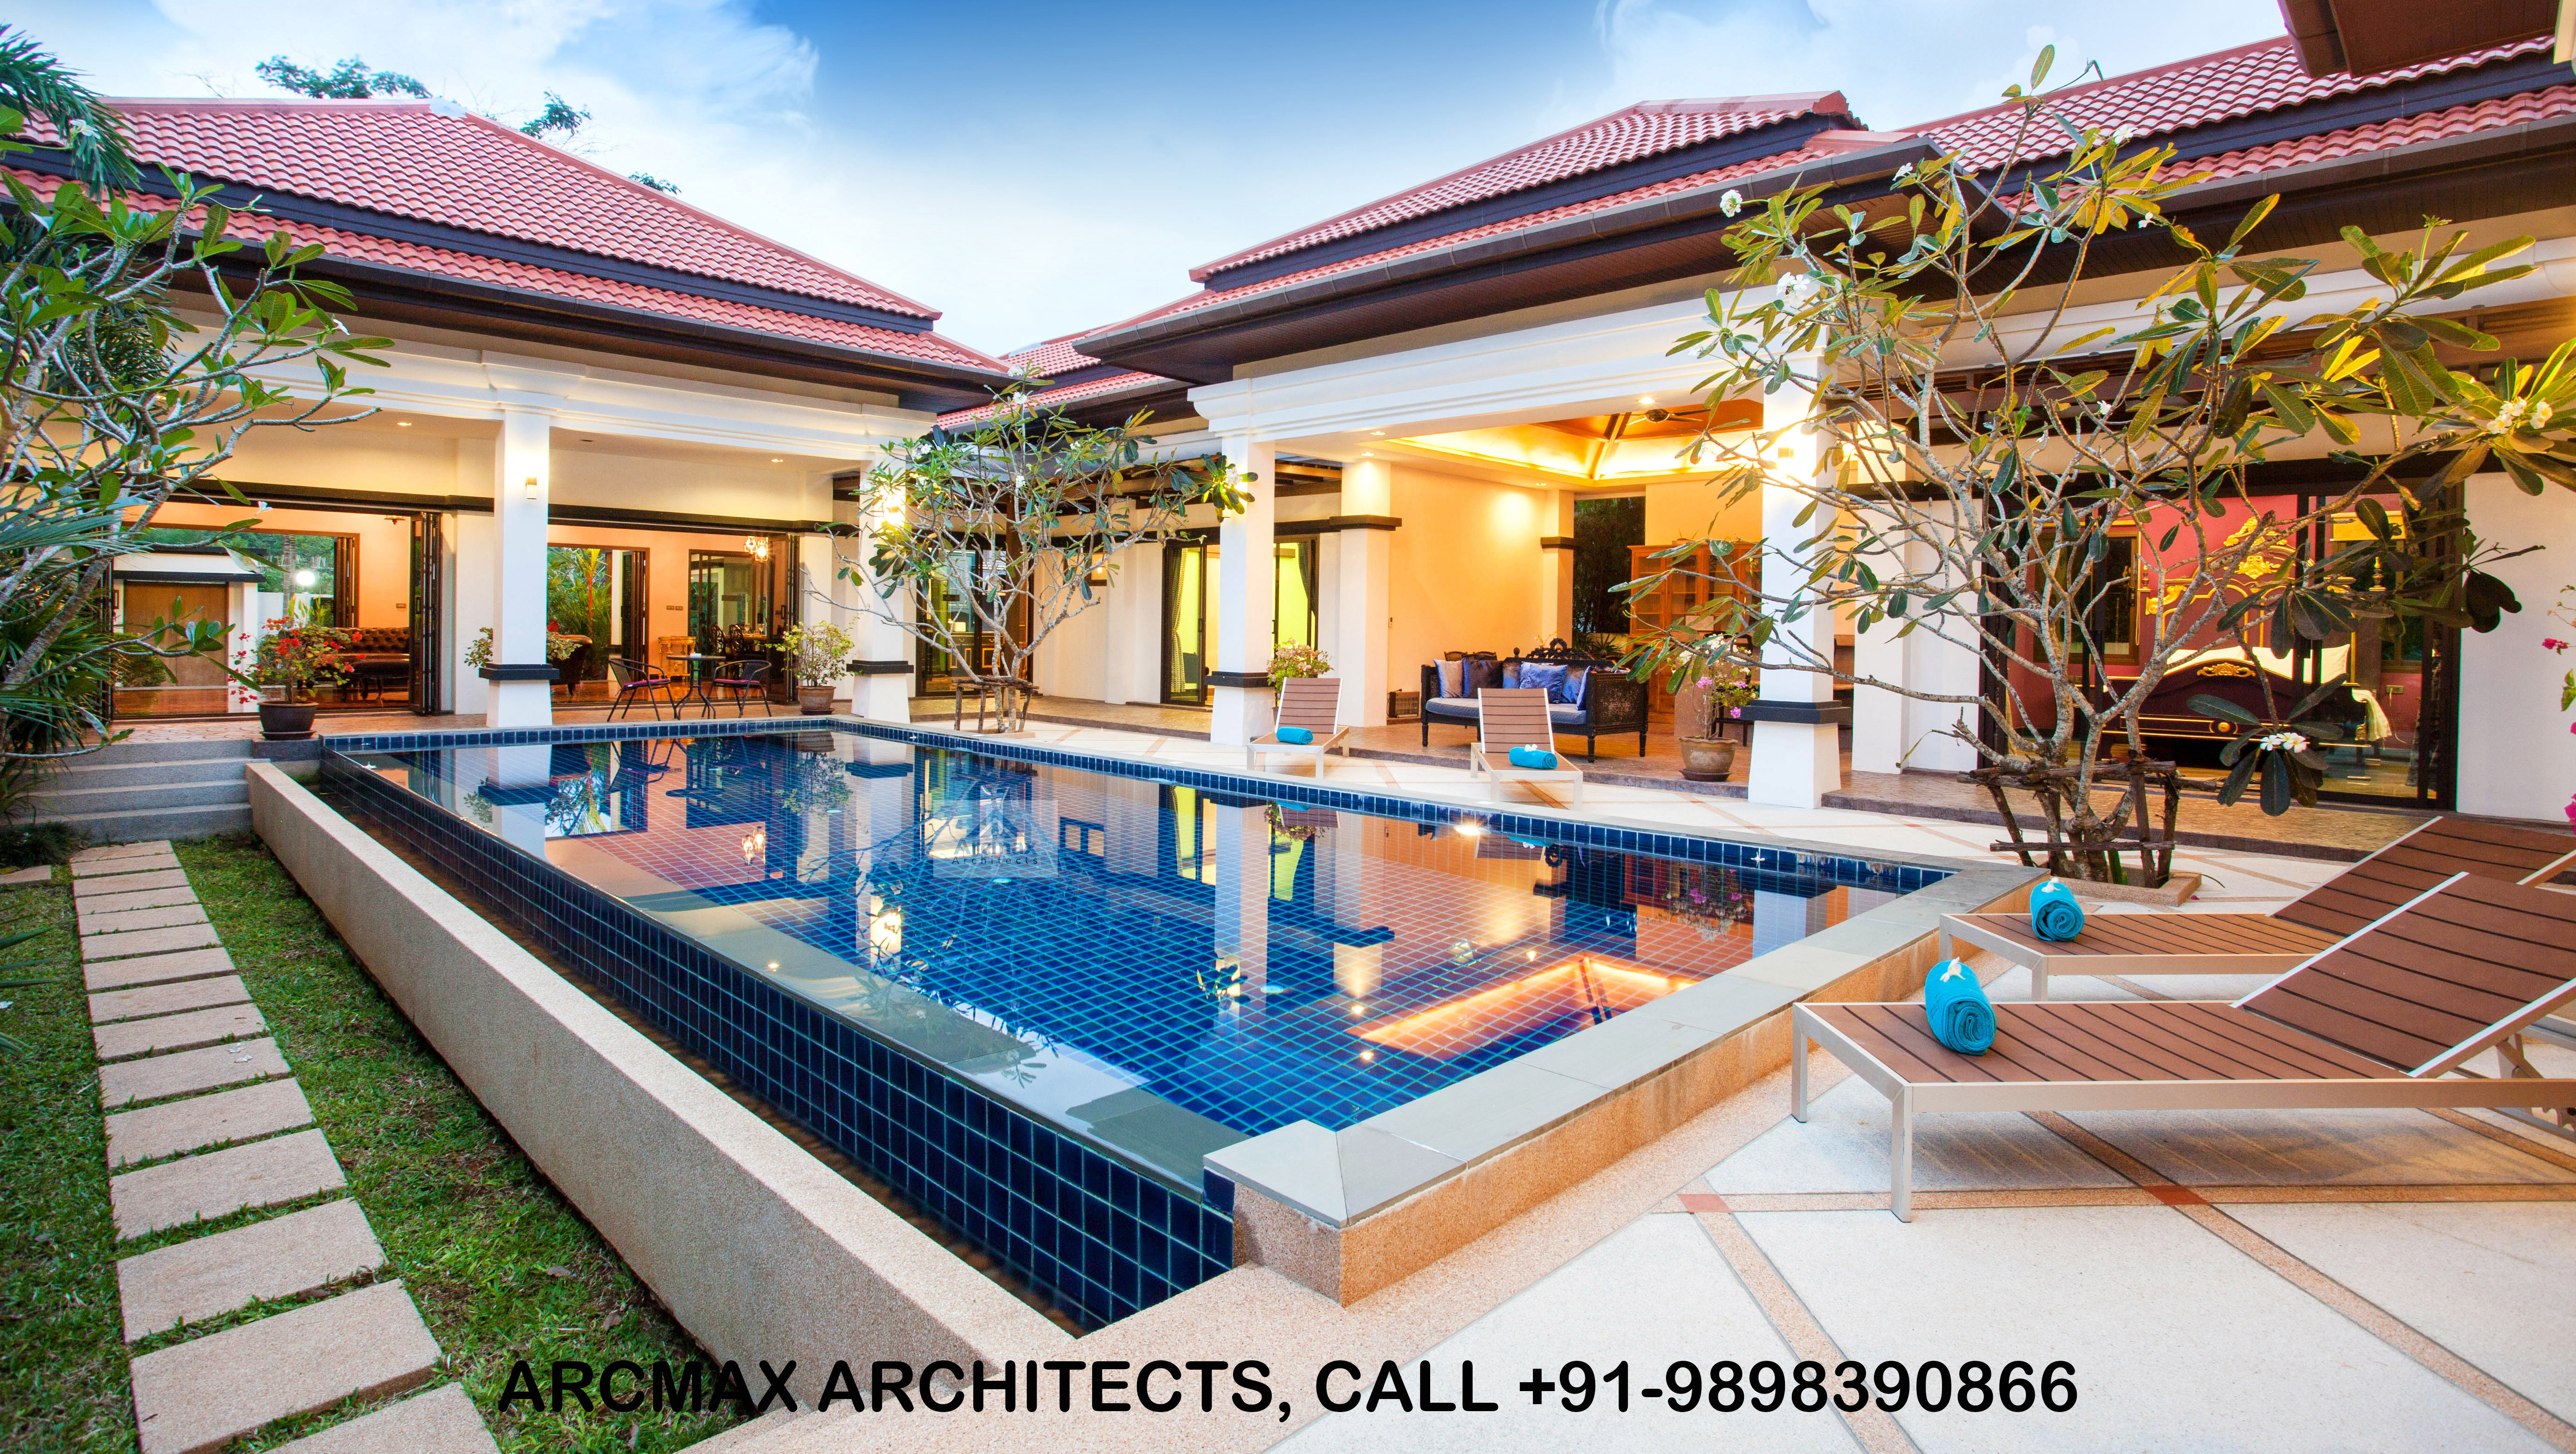 Top Modern Architects In Ahmedabad For Bungalow Design Arcmax Architects